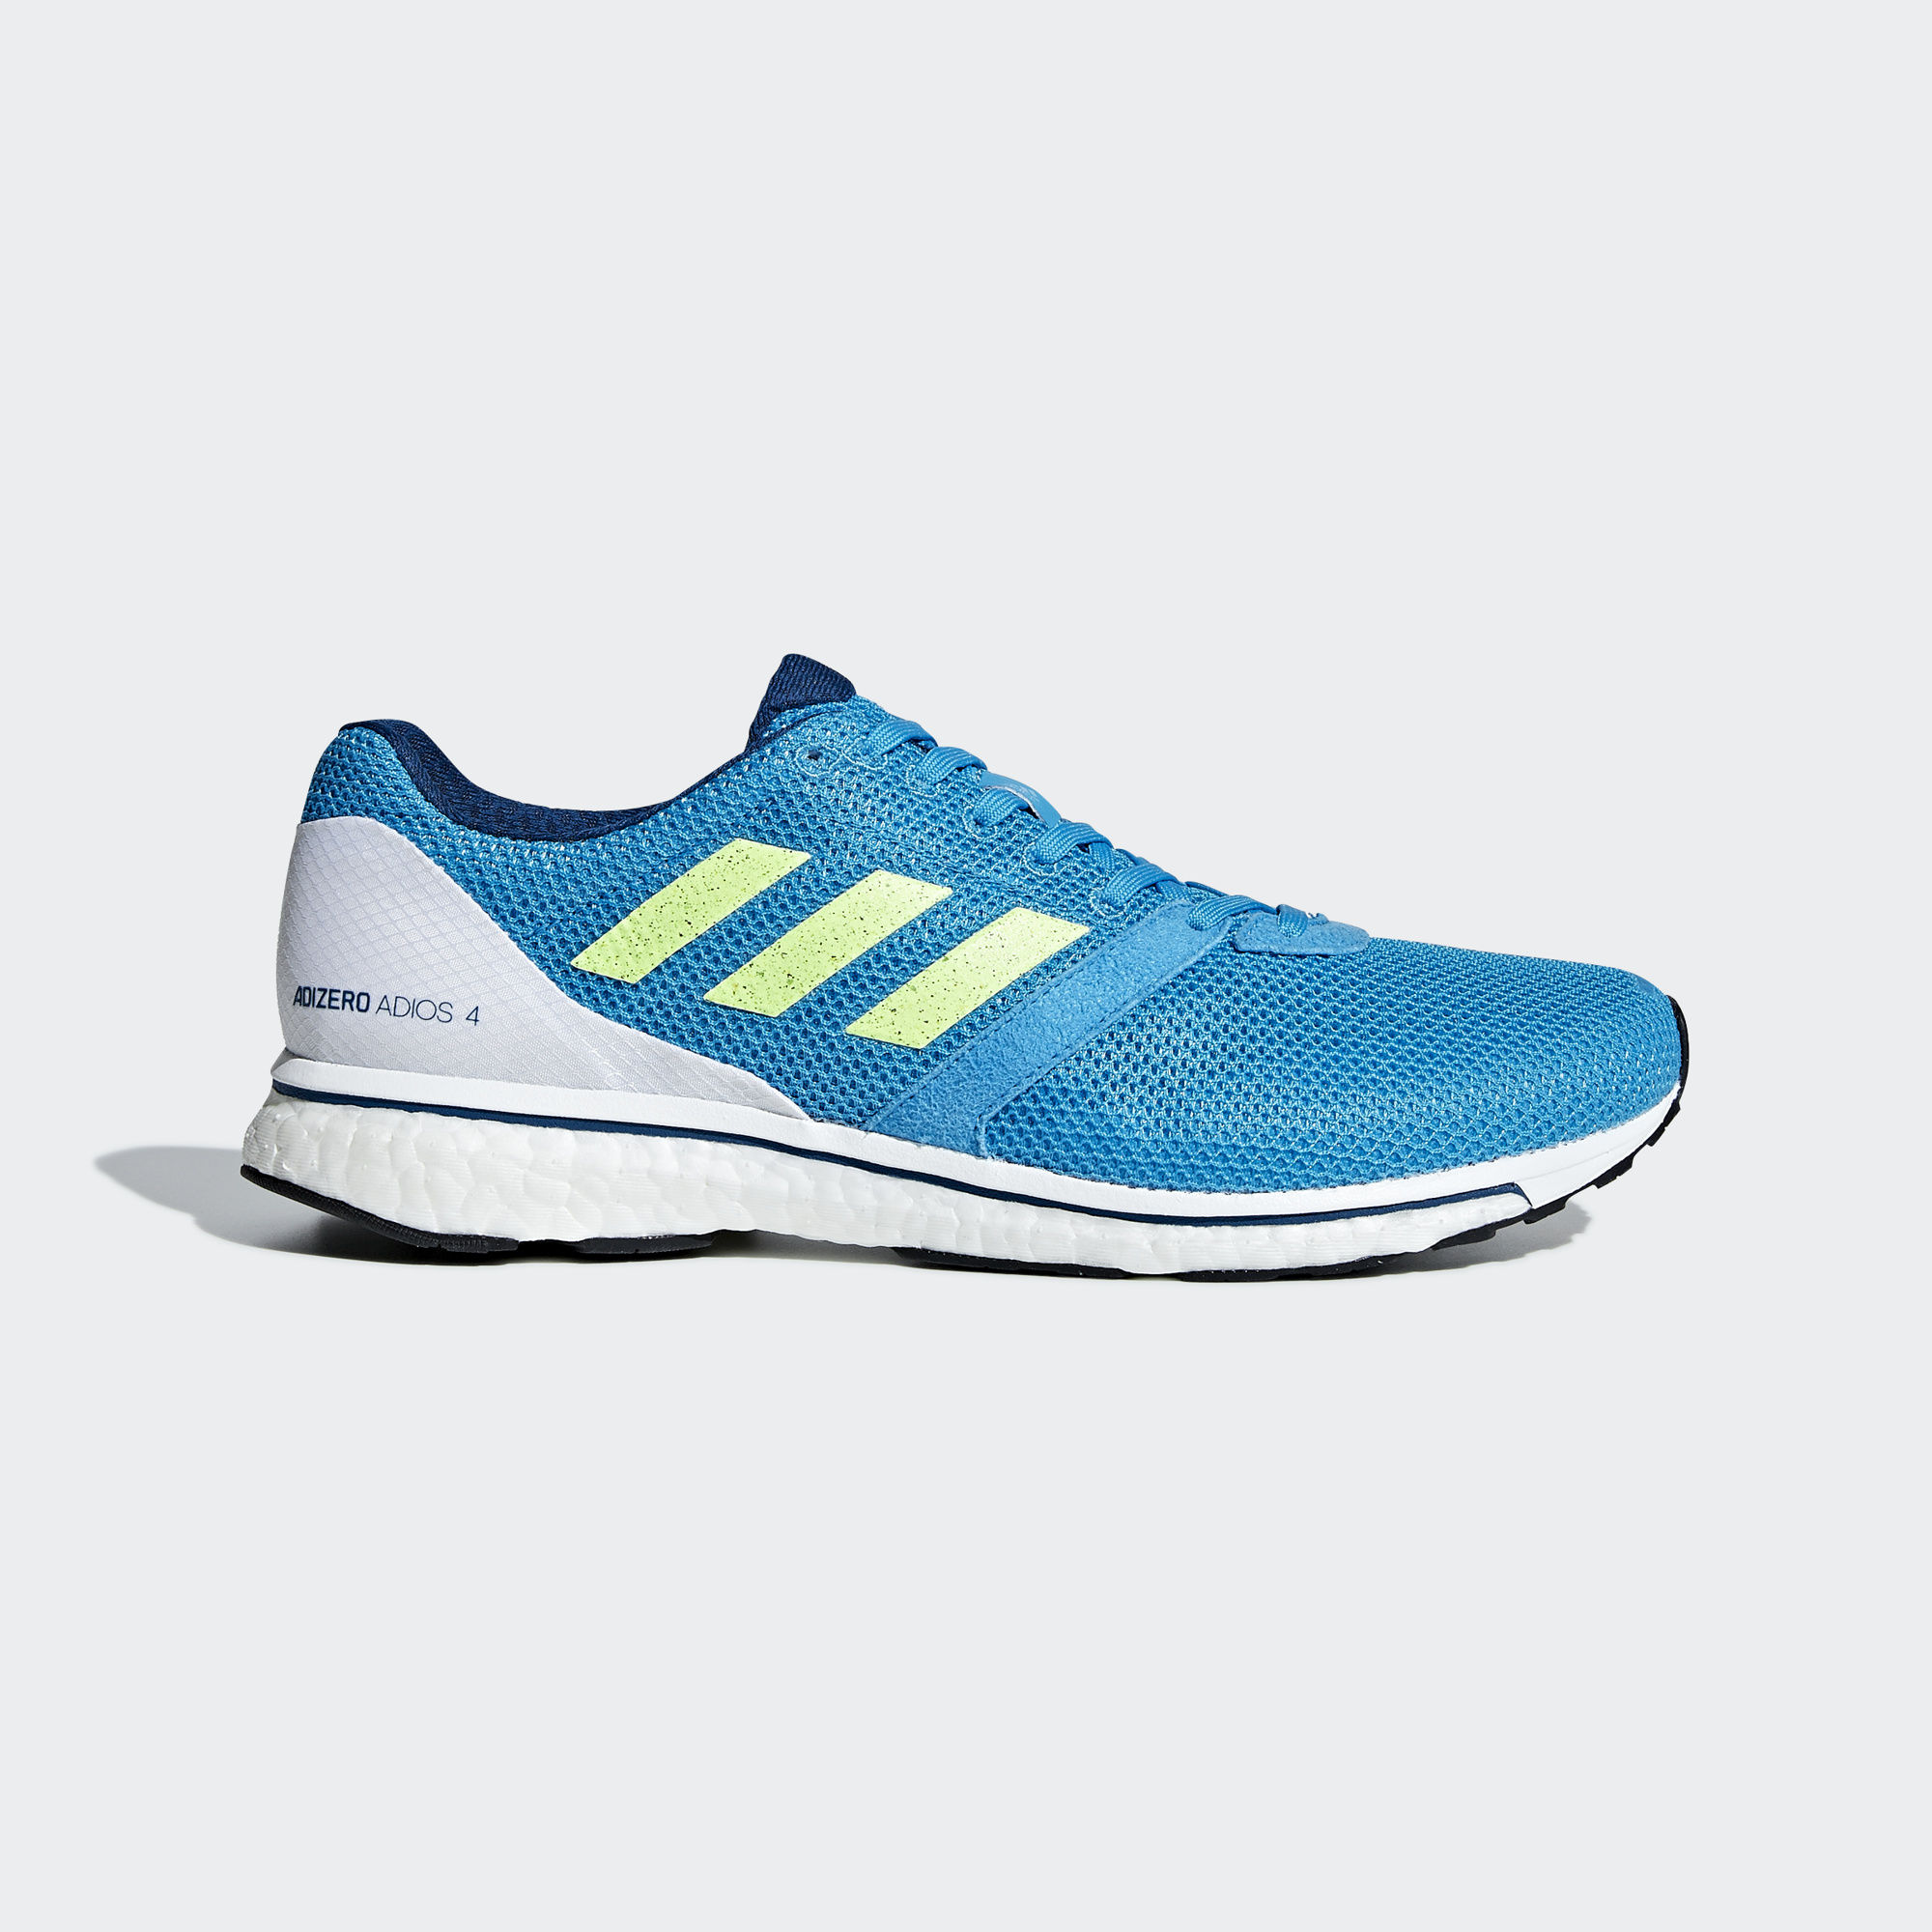 hot sale online dd08a 1cdc4 Men's Adidas Adios 4